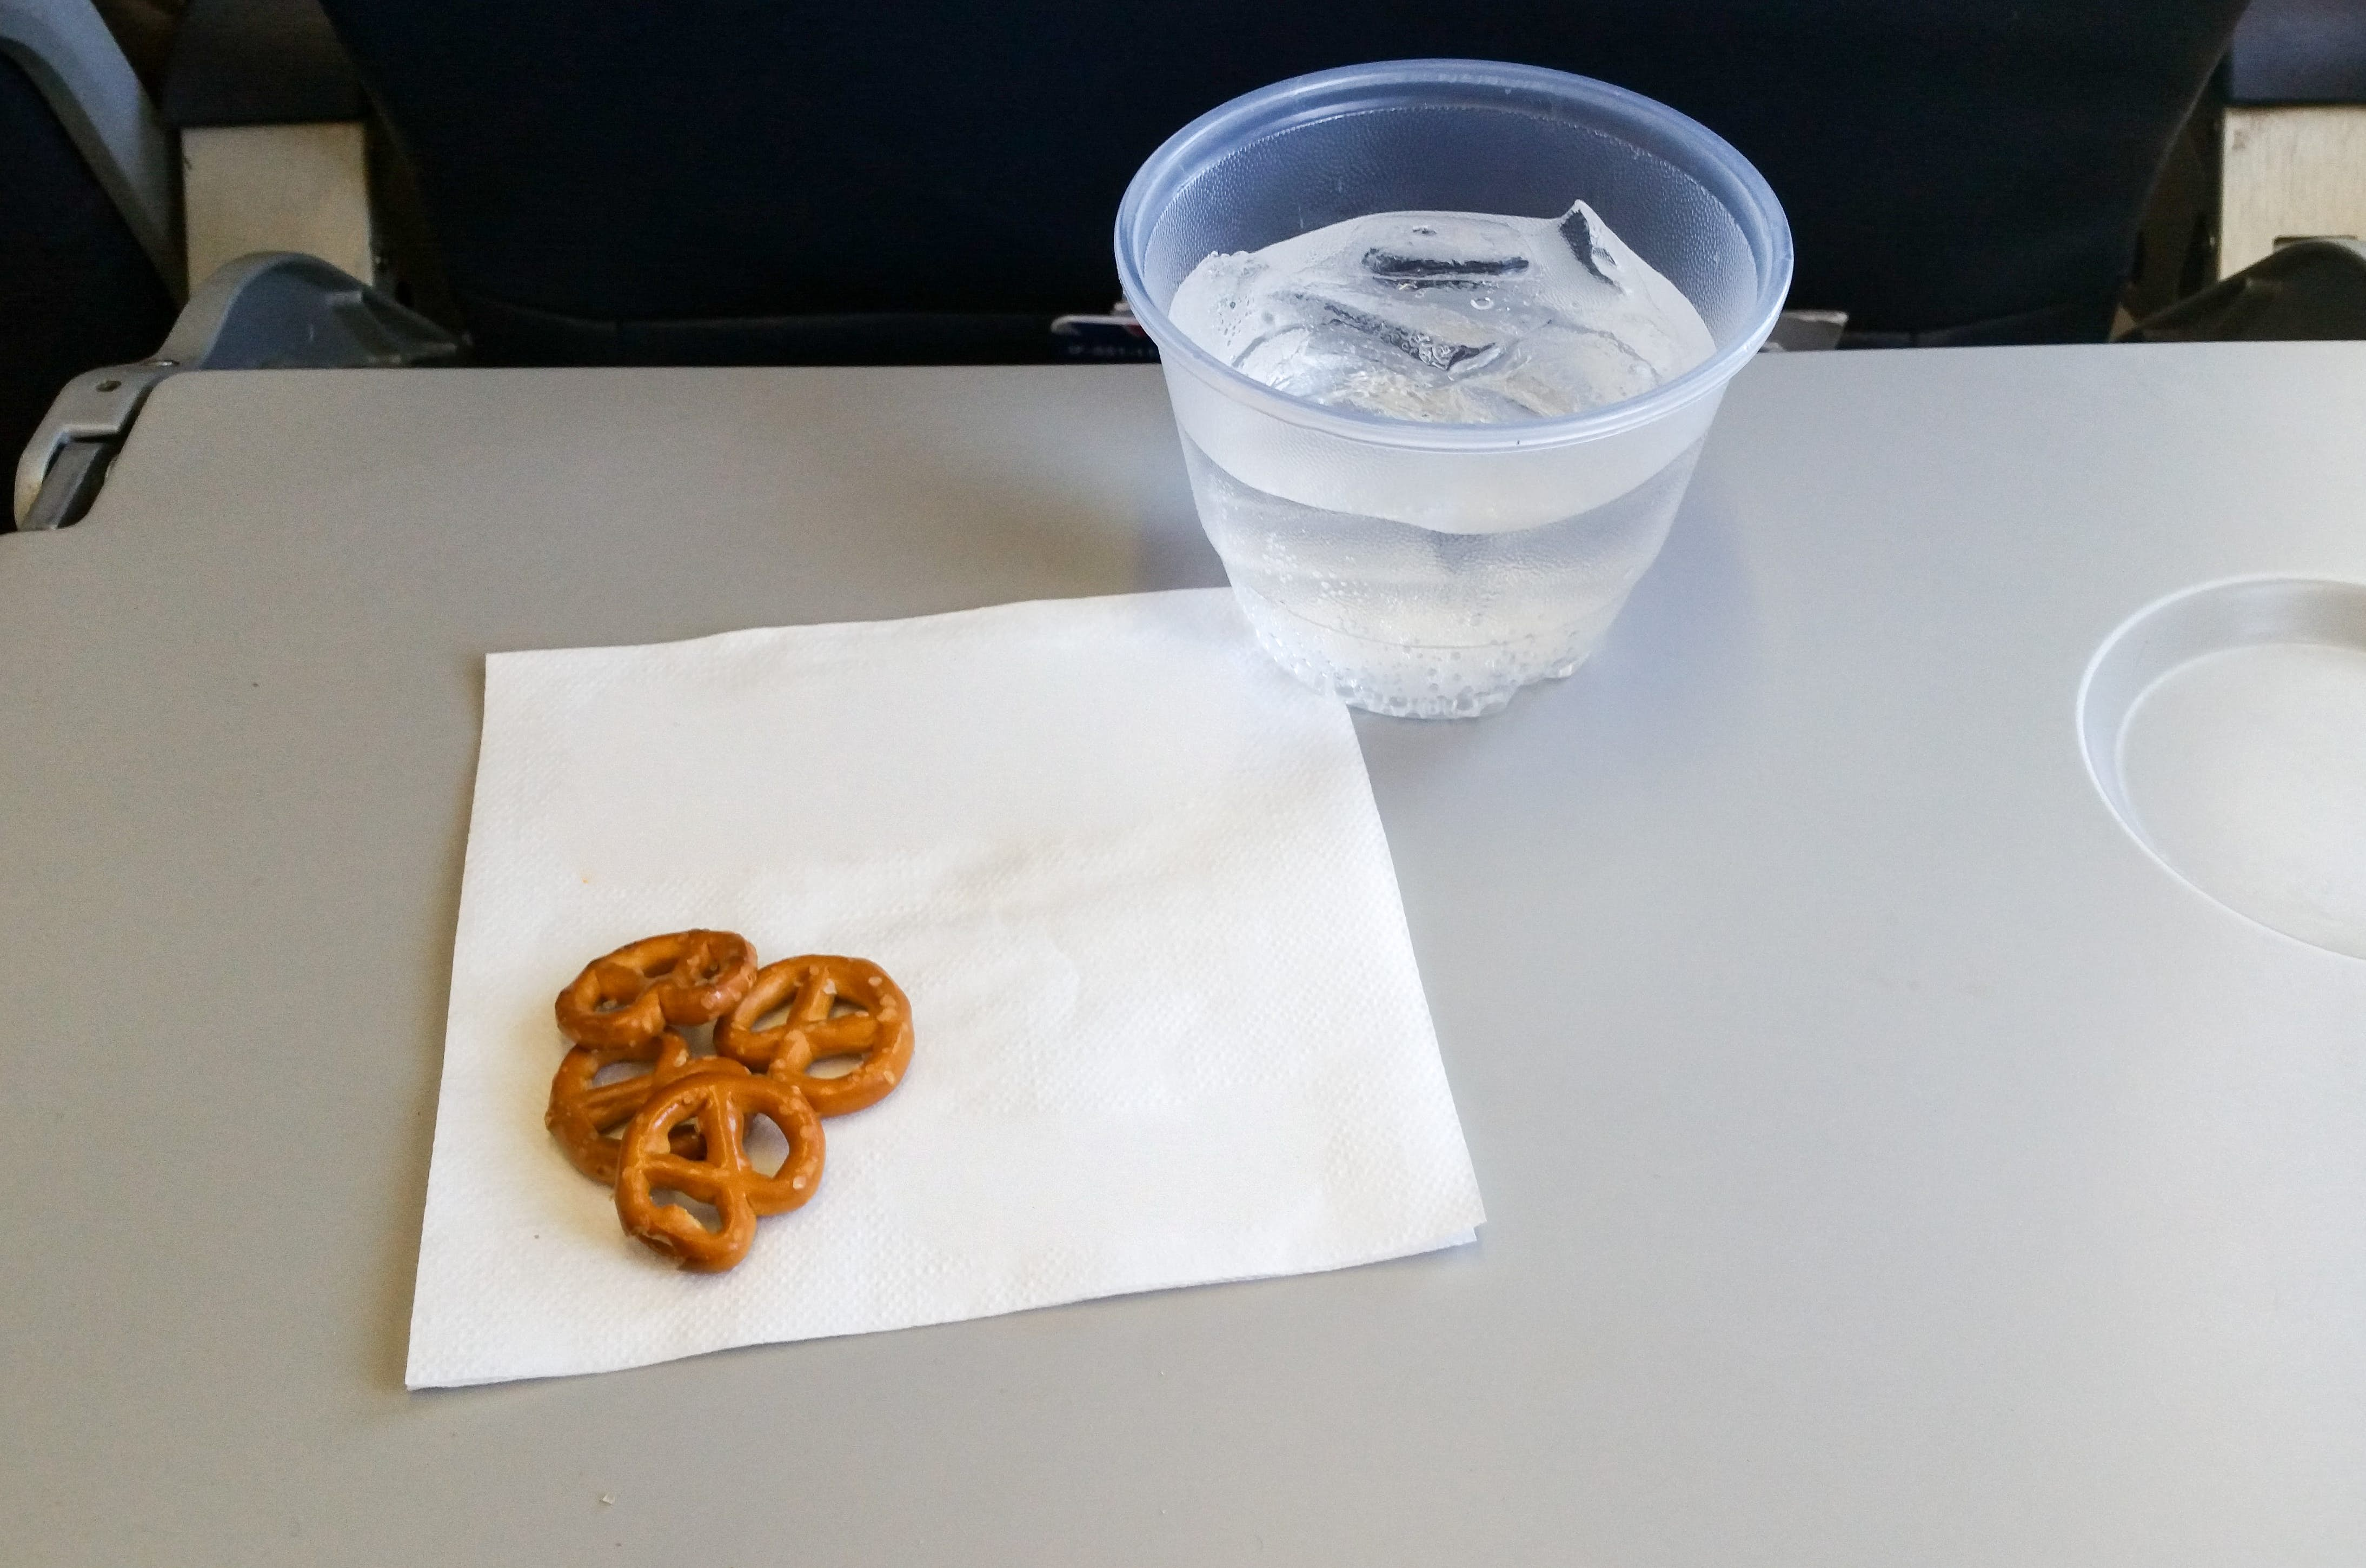 From ice cream bars to stroopwafel, these airlines offer the best snacks -  Lonely Planet